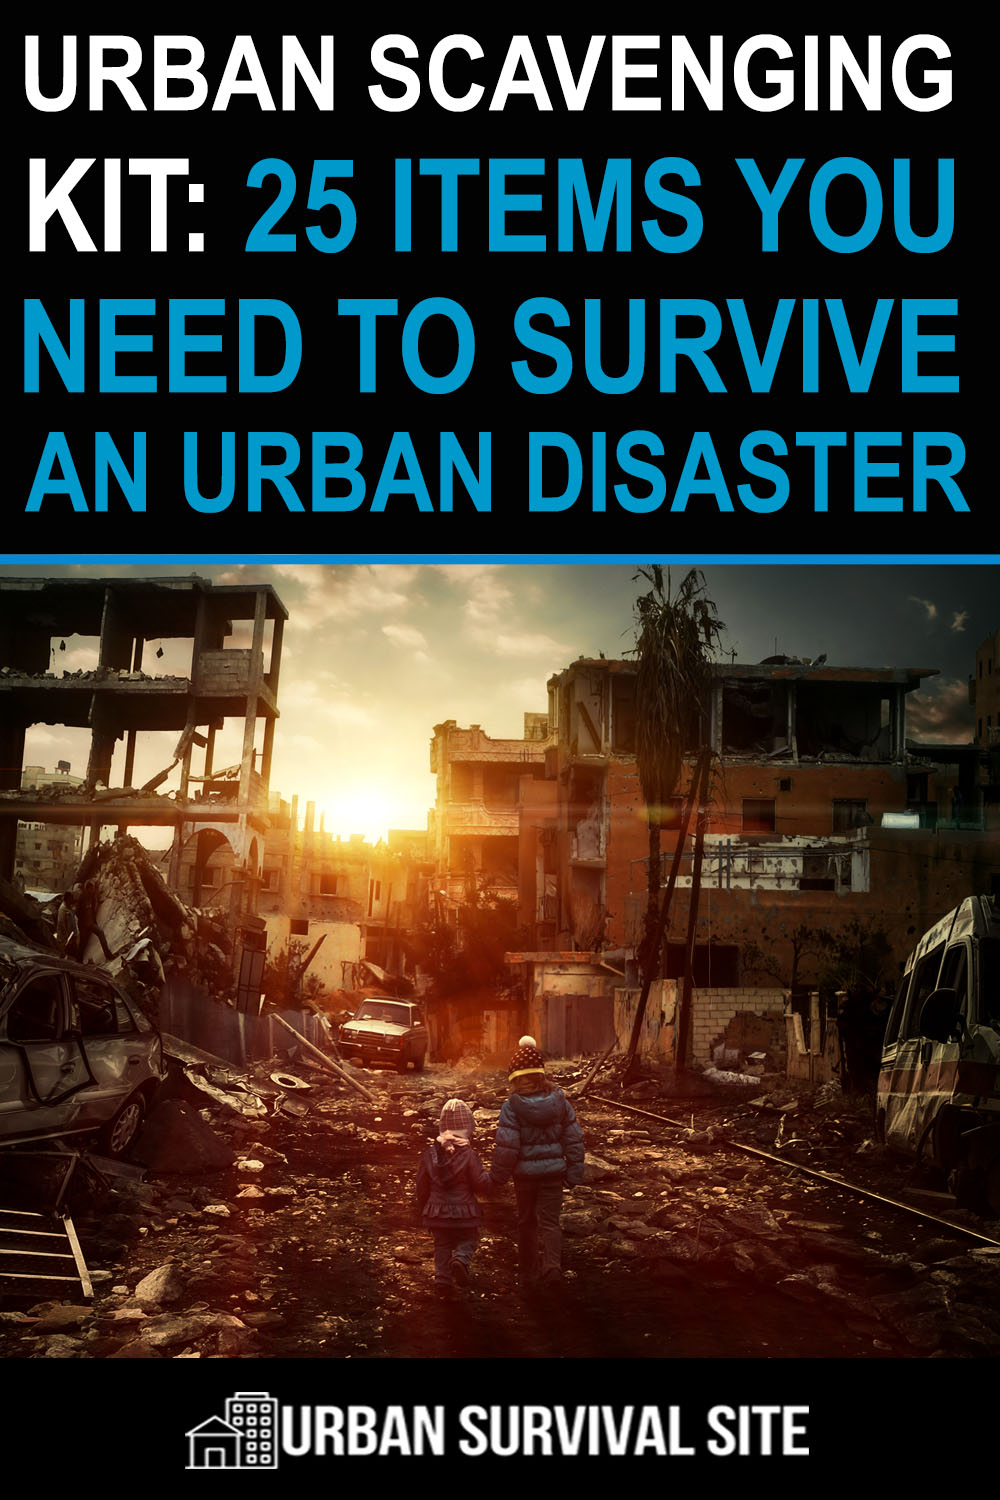 Urban Scavenging Kit: 25 Items You Need To Survive An Urban Disaster